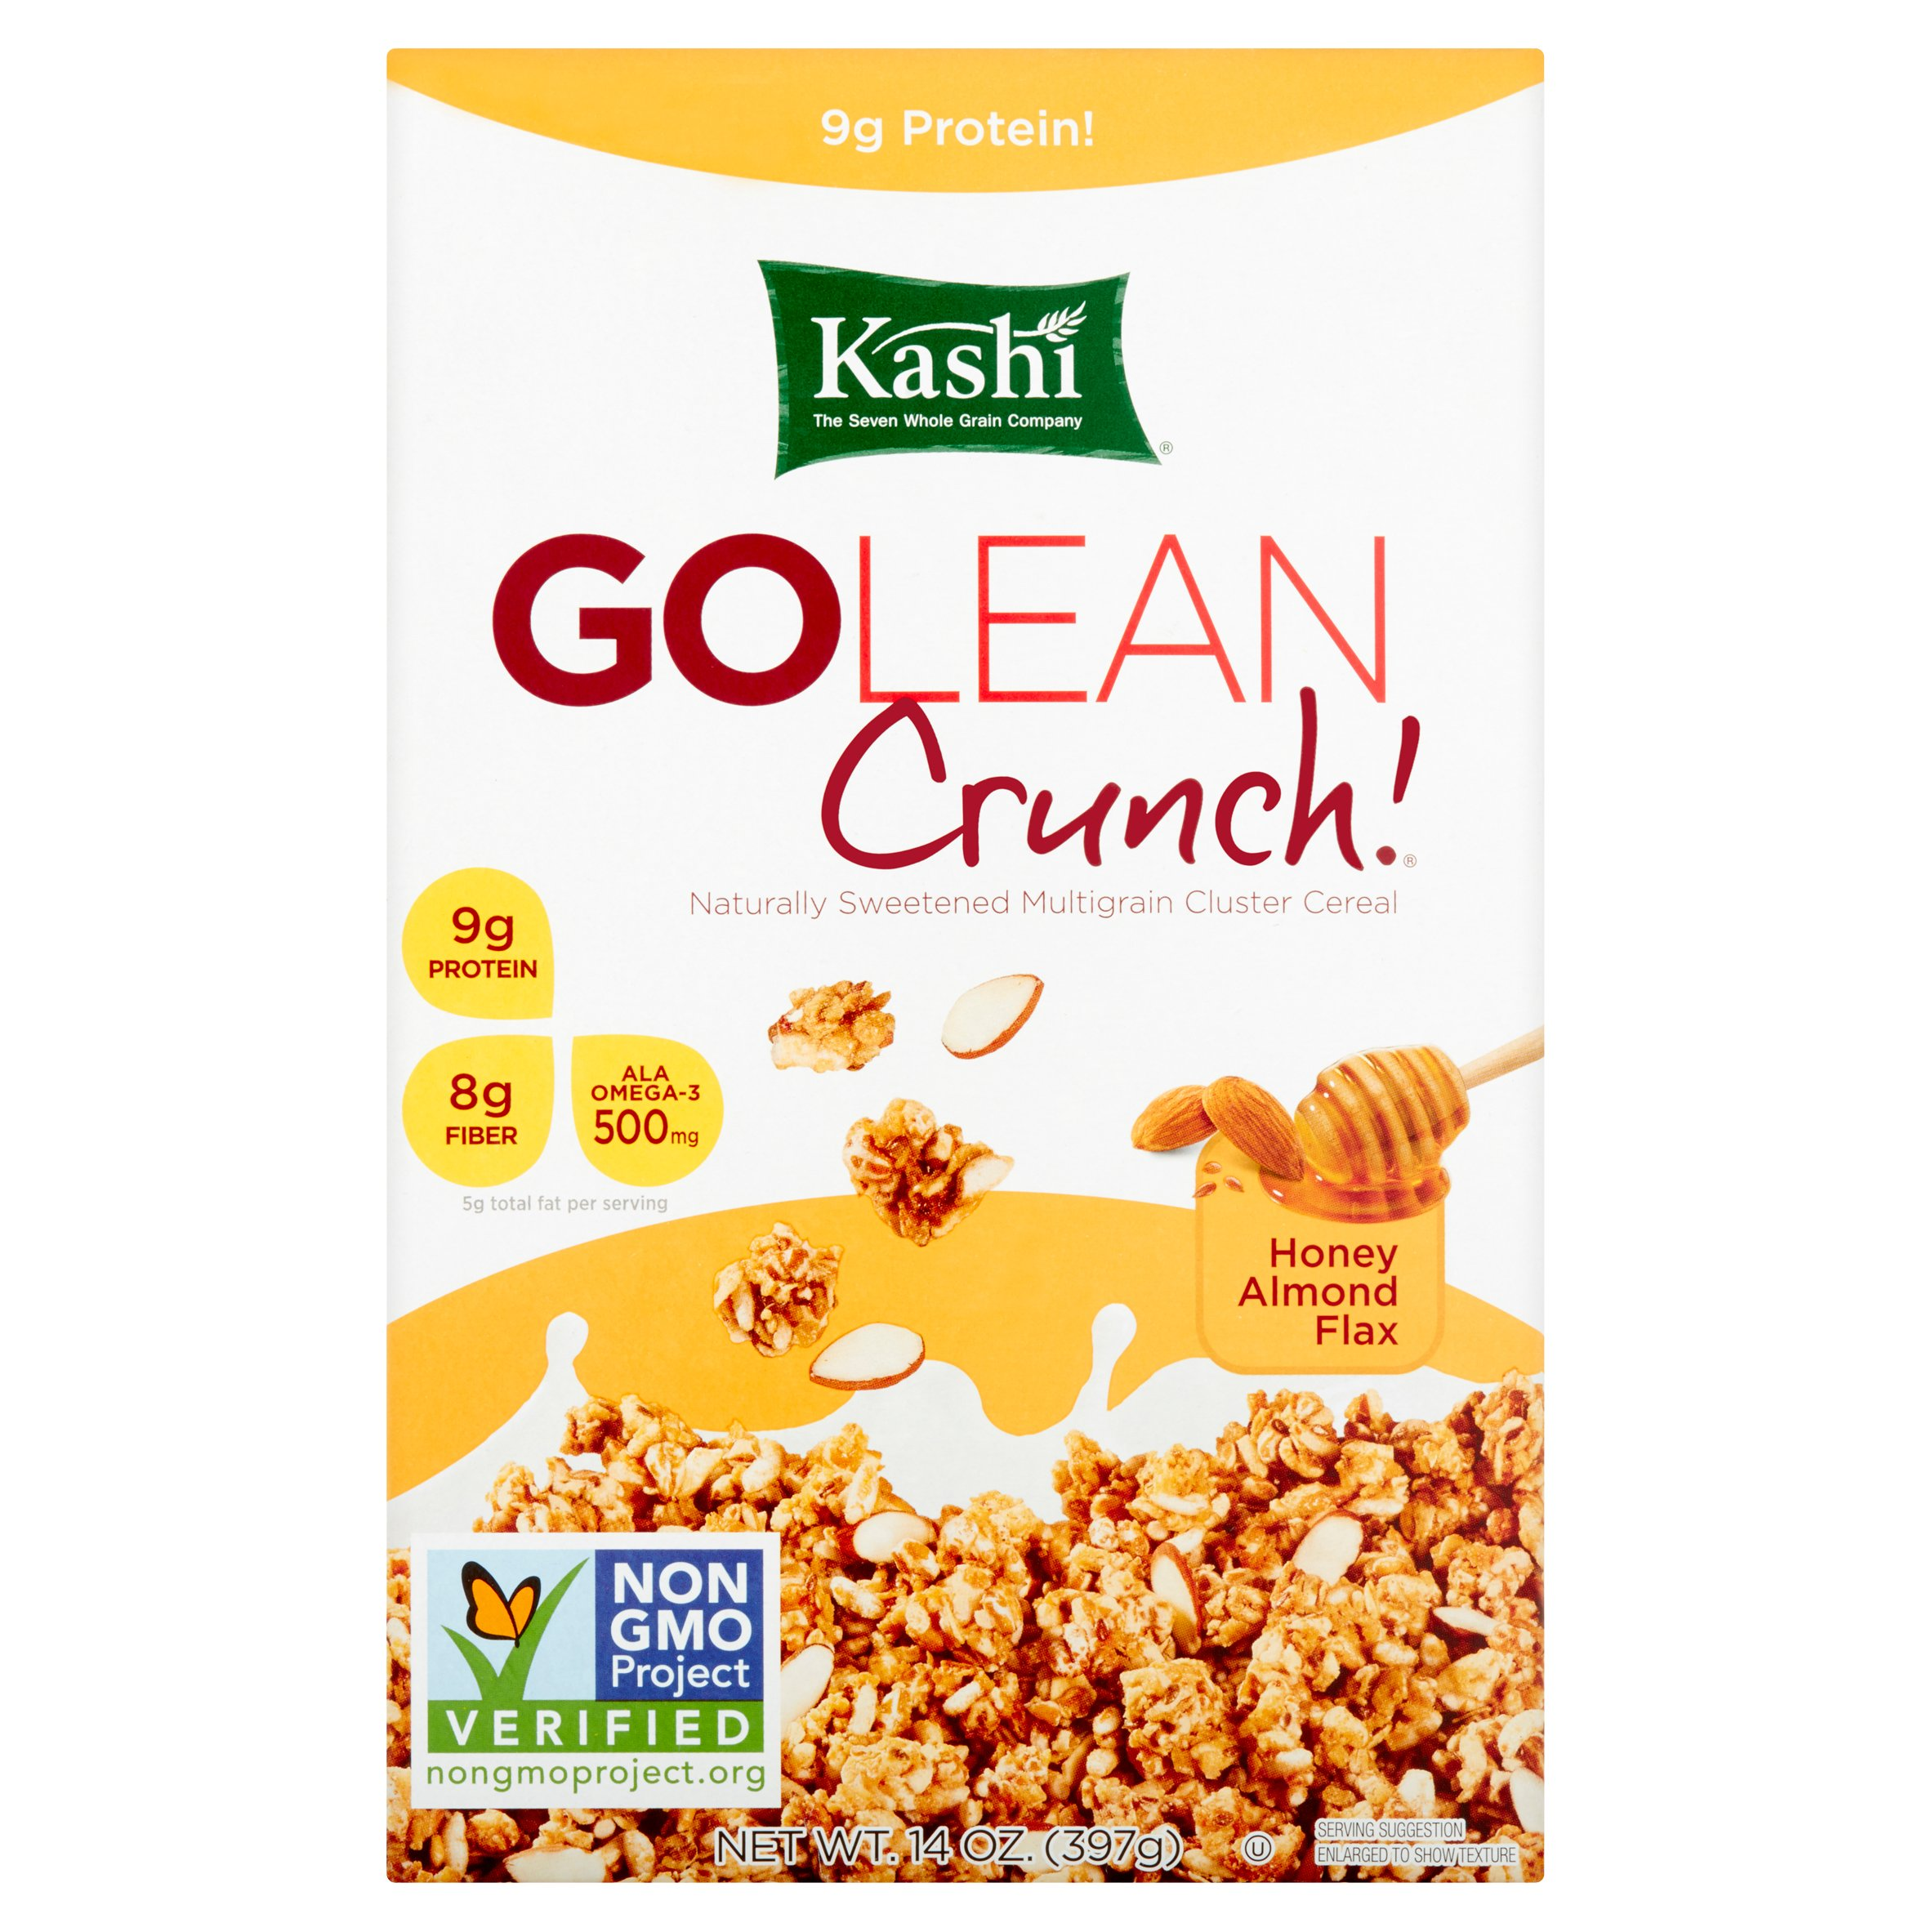 Kashi Go Lean Crunch! Naturally Sweetened Multigrain Cluster Cereal Honey Almond Flax 14oz